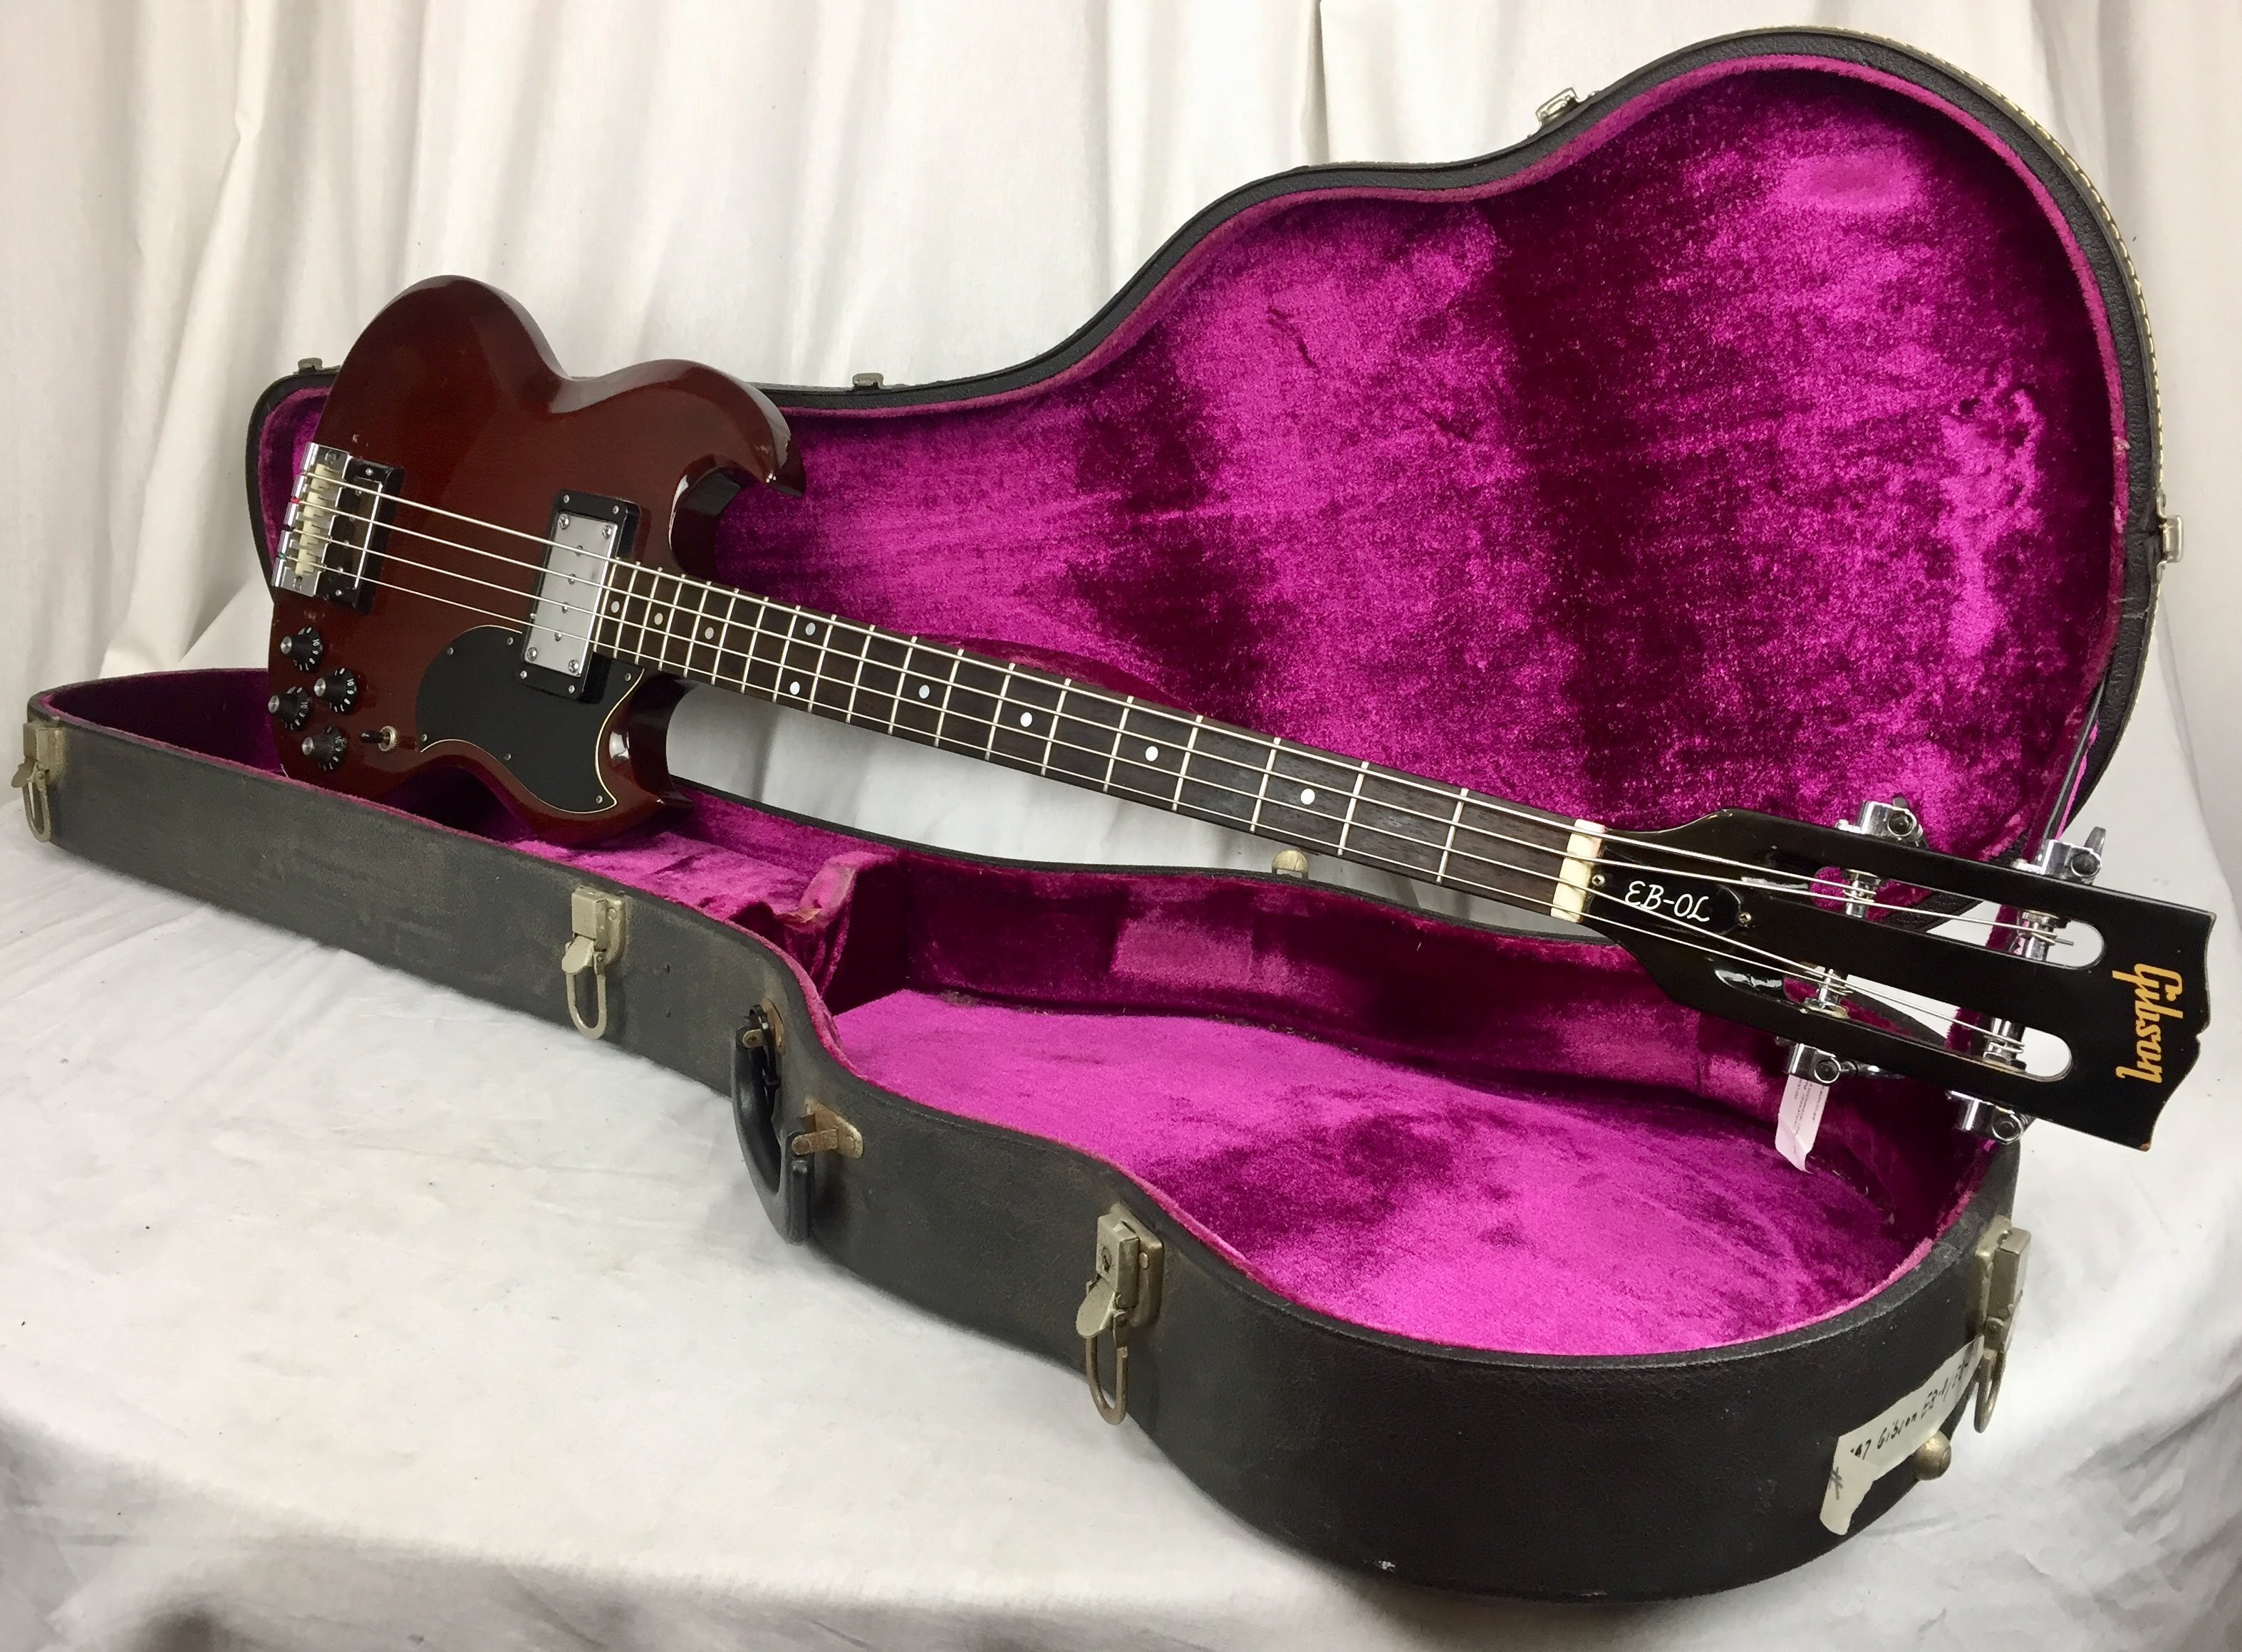 Vintage Guitars, SWEDEN - 1968 Gibson EB-0 converted to EB-3